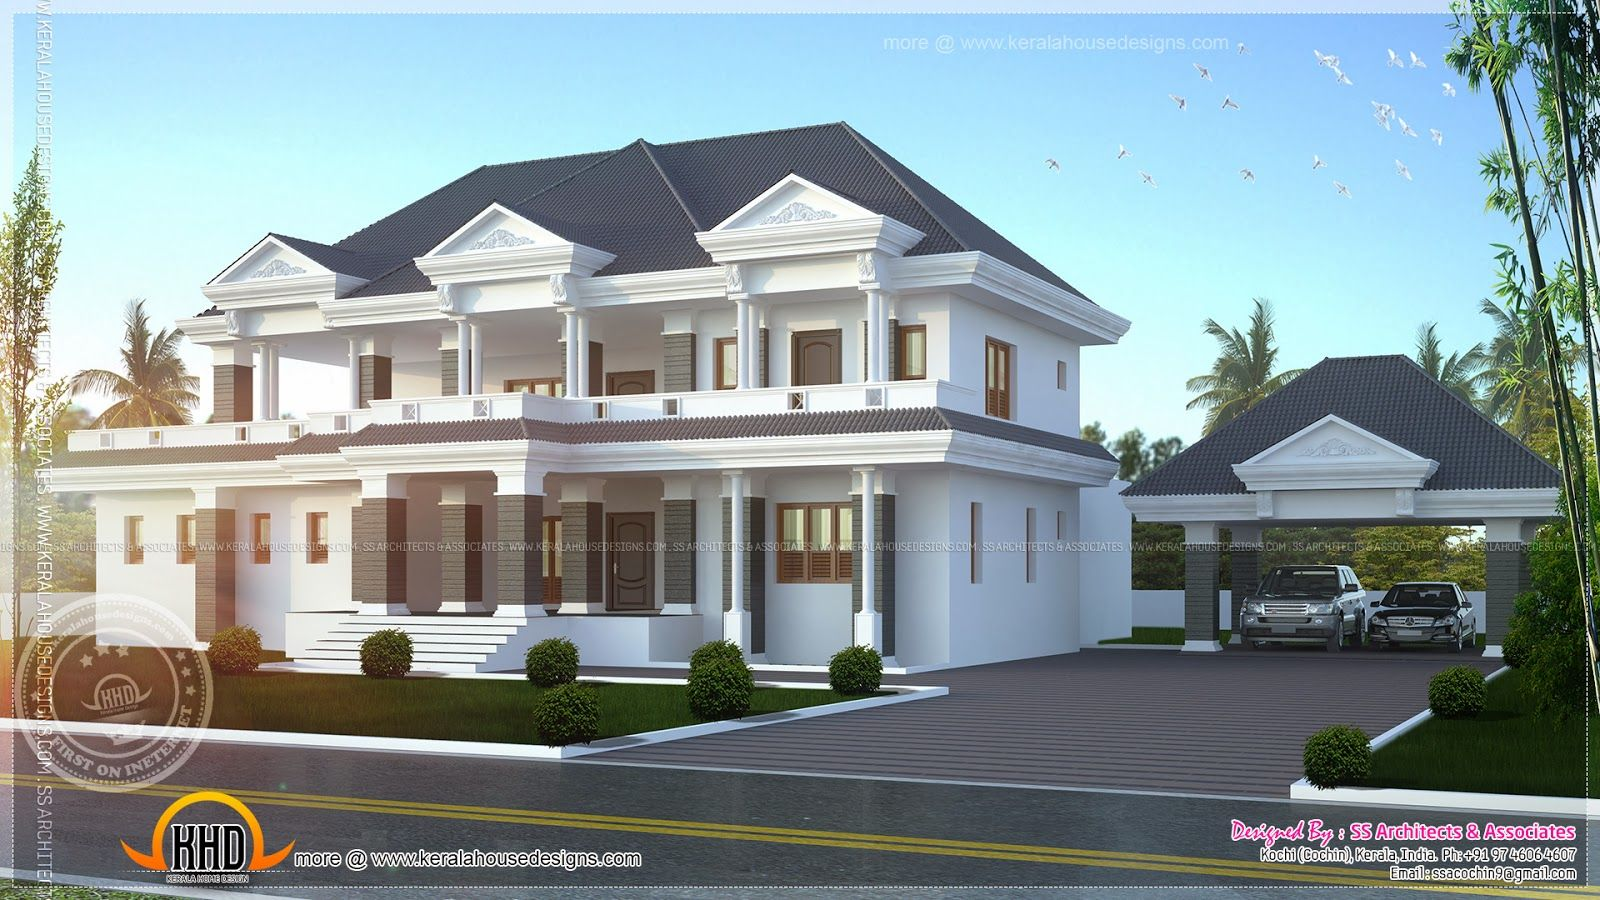 Luxury house plans posh luxury home plan audisb luxury for Pictures of luxury homes